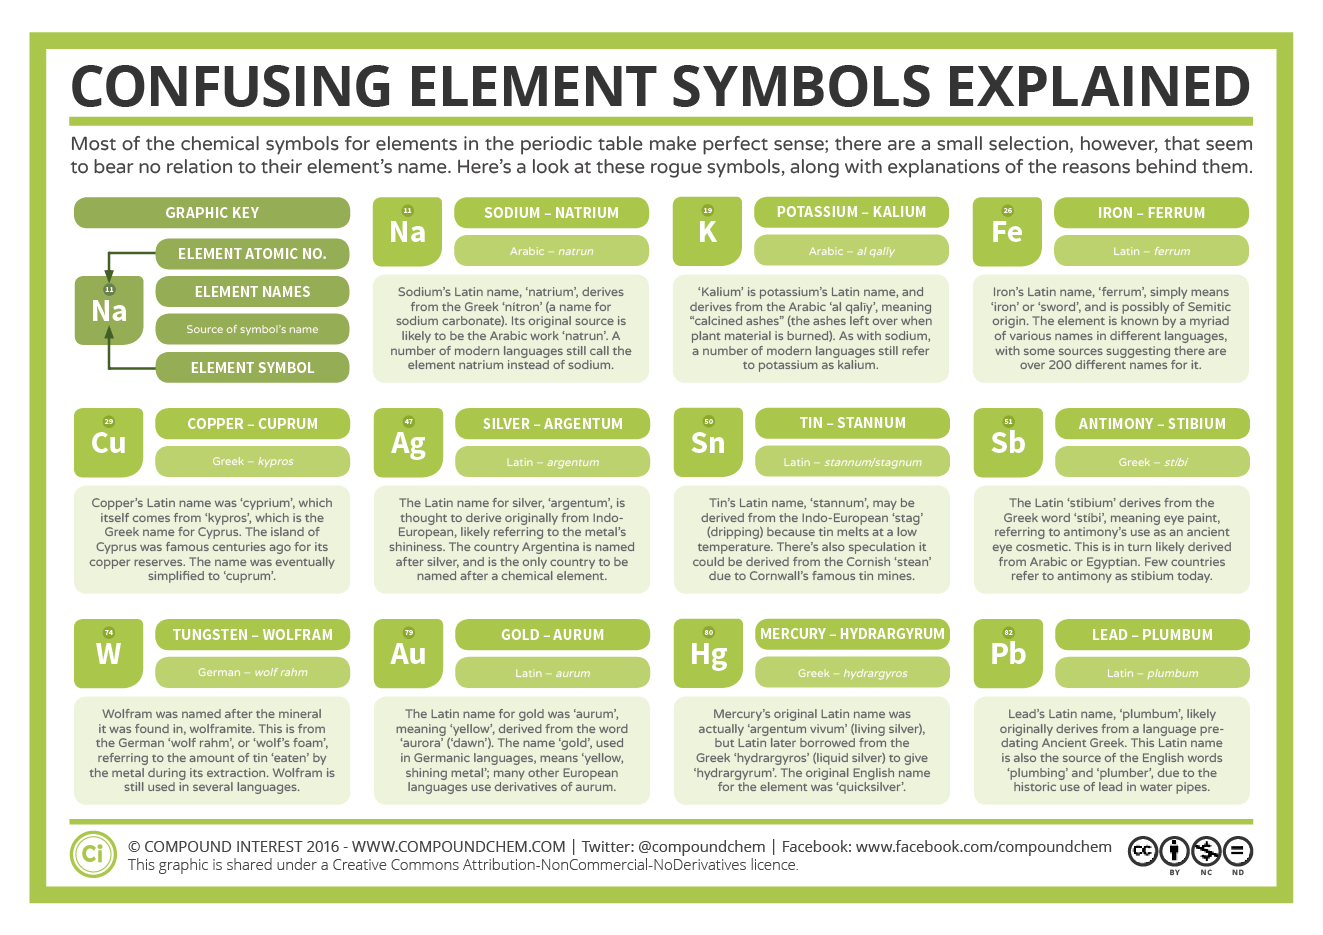 Compound interest element oddities 11 confusing chemical symbols 11 confusing chemical element symbols explained urtaz Images